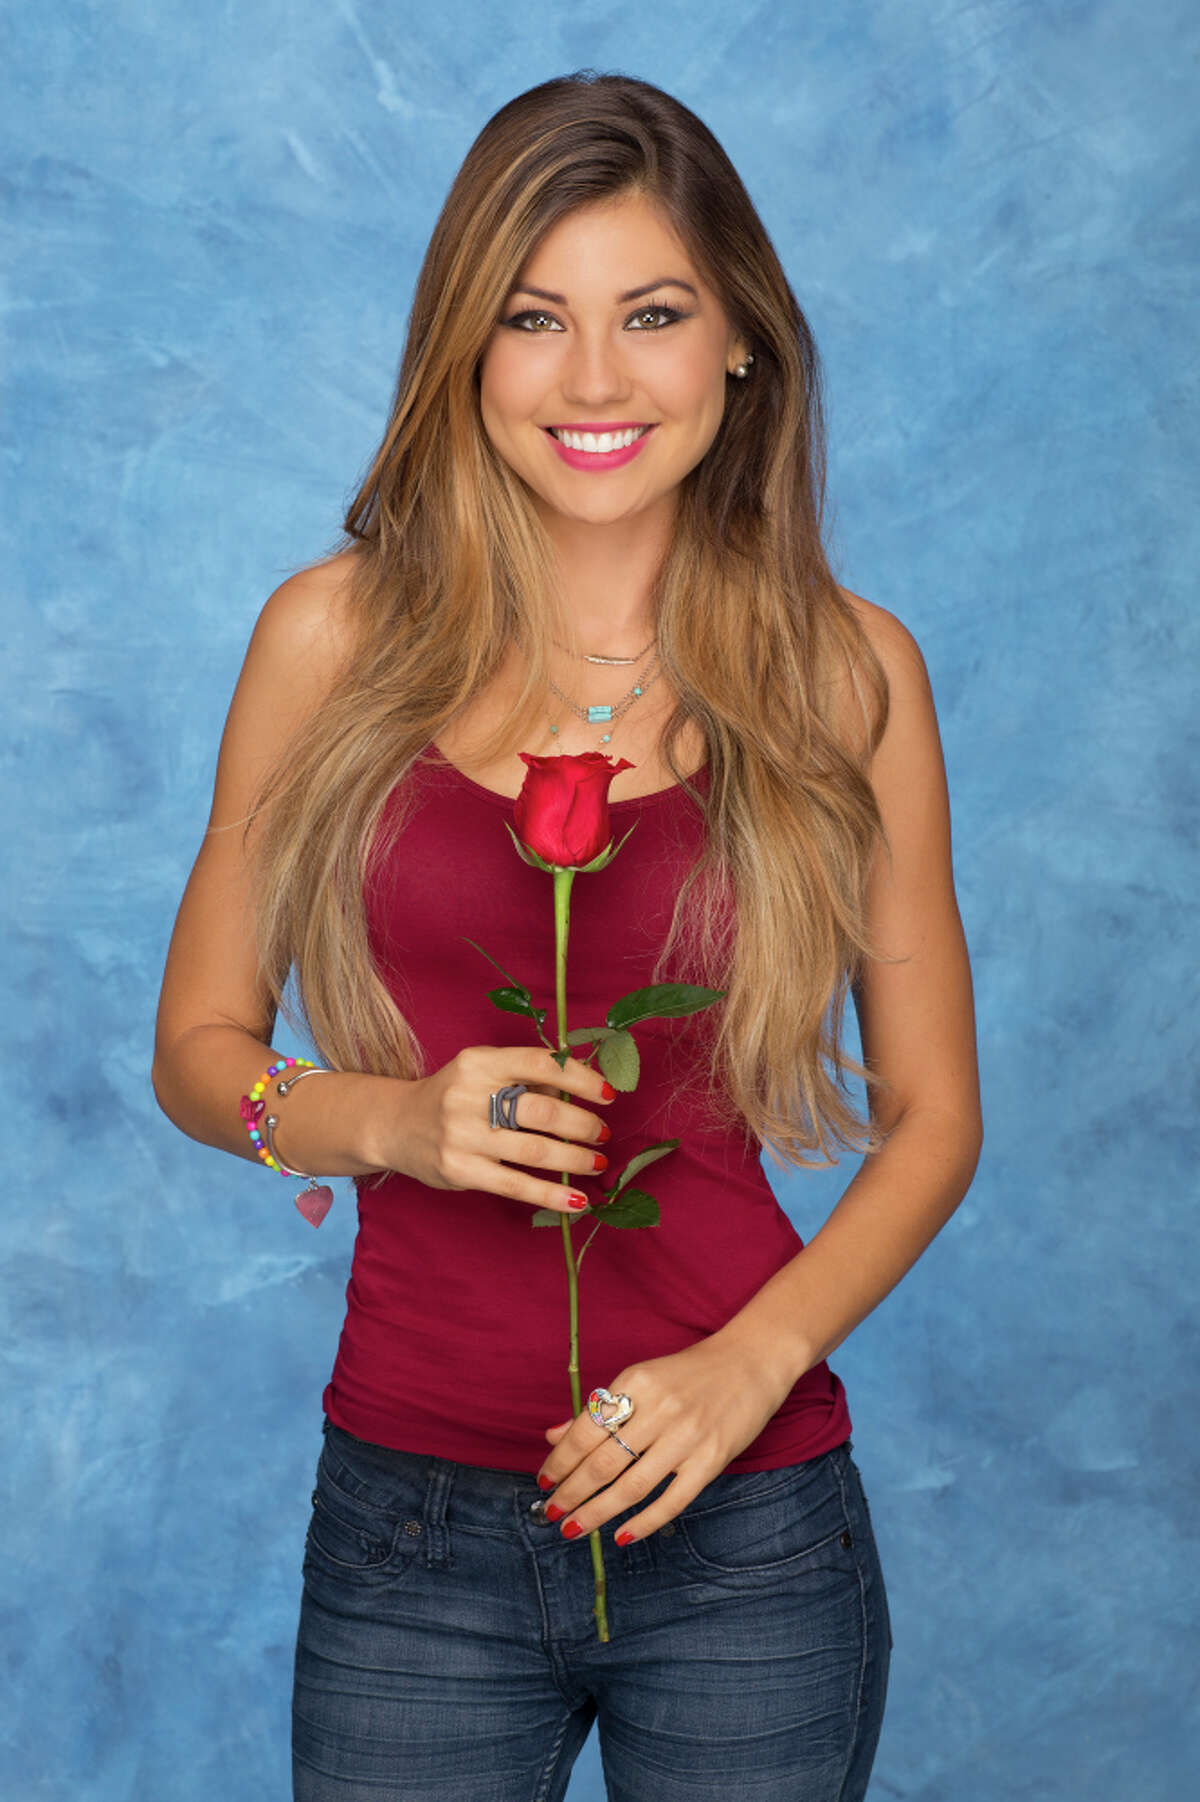 Britt Nilsson is one of two bachelorettes on ABC's